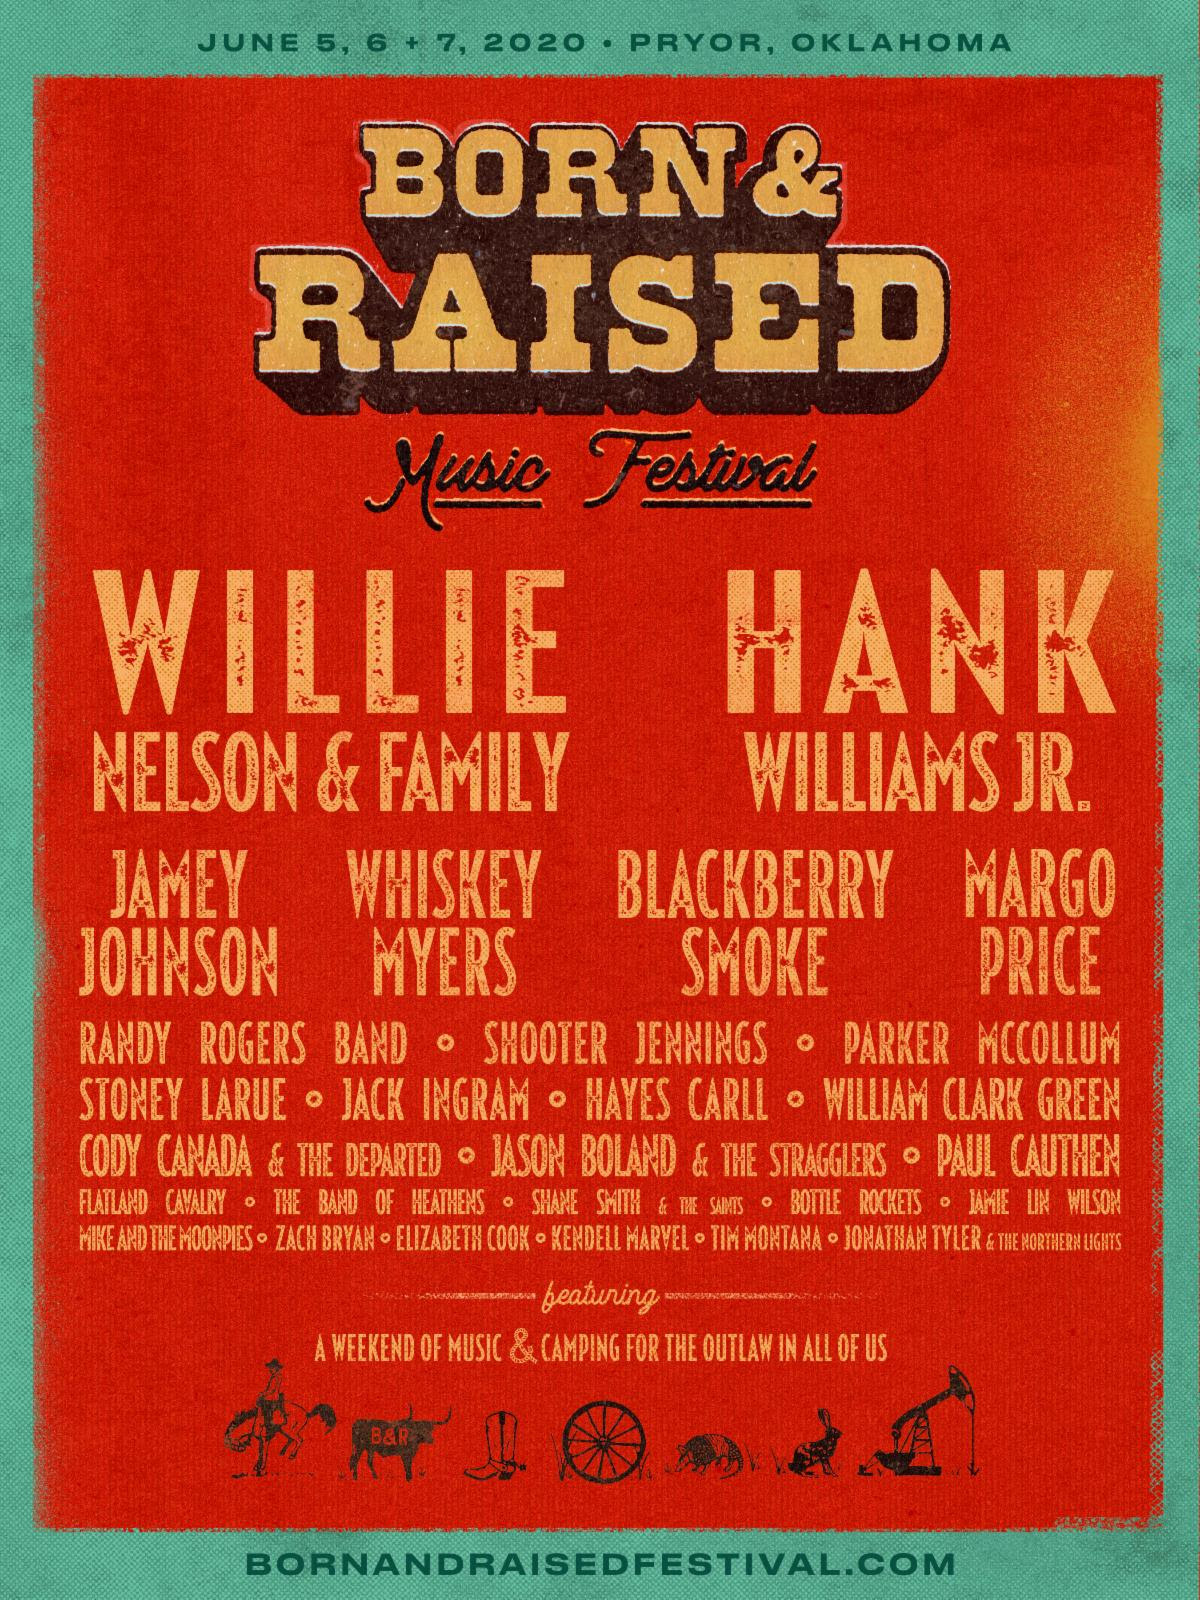 BORN & RAISED MUSIC FESTIVAL Adds Jason Boland & The Stragglers and Jamie Lin Wilson To Inaugural Lineup